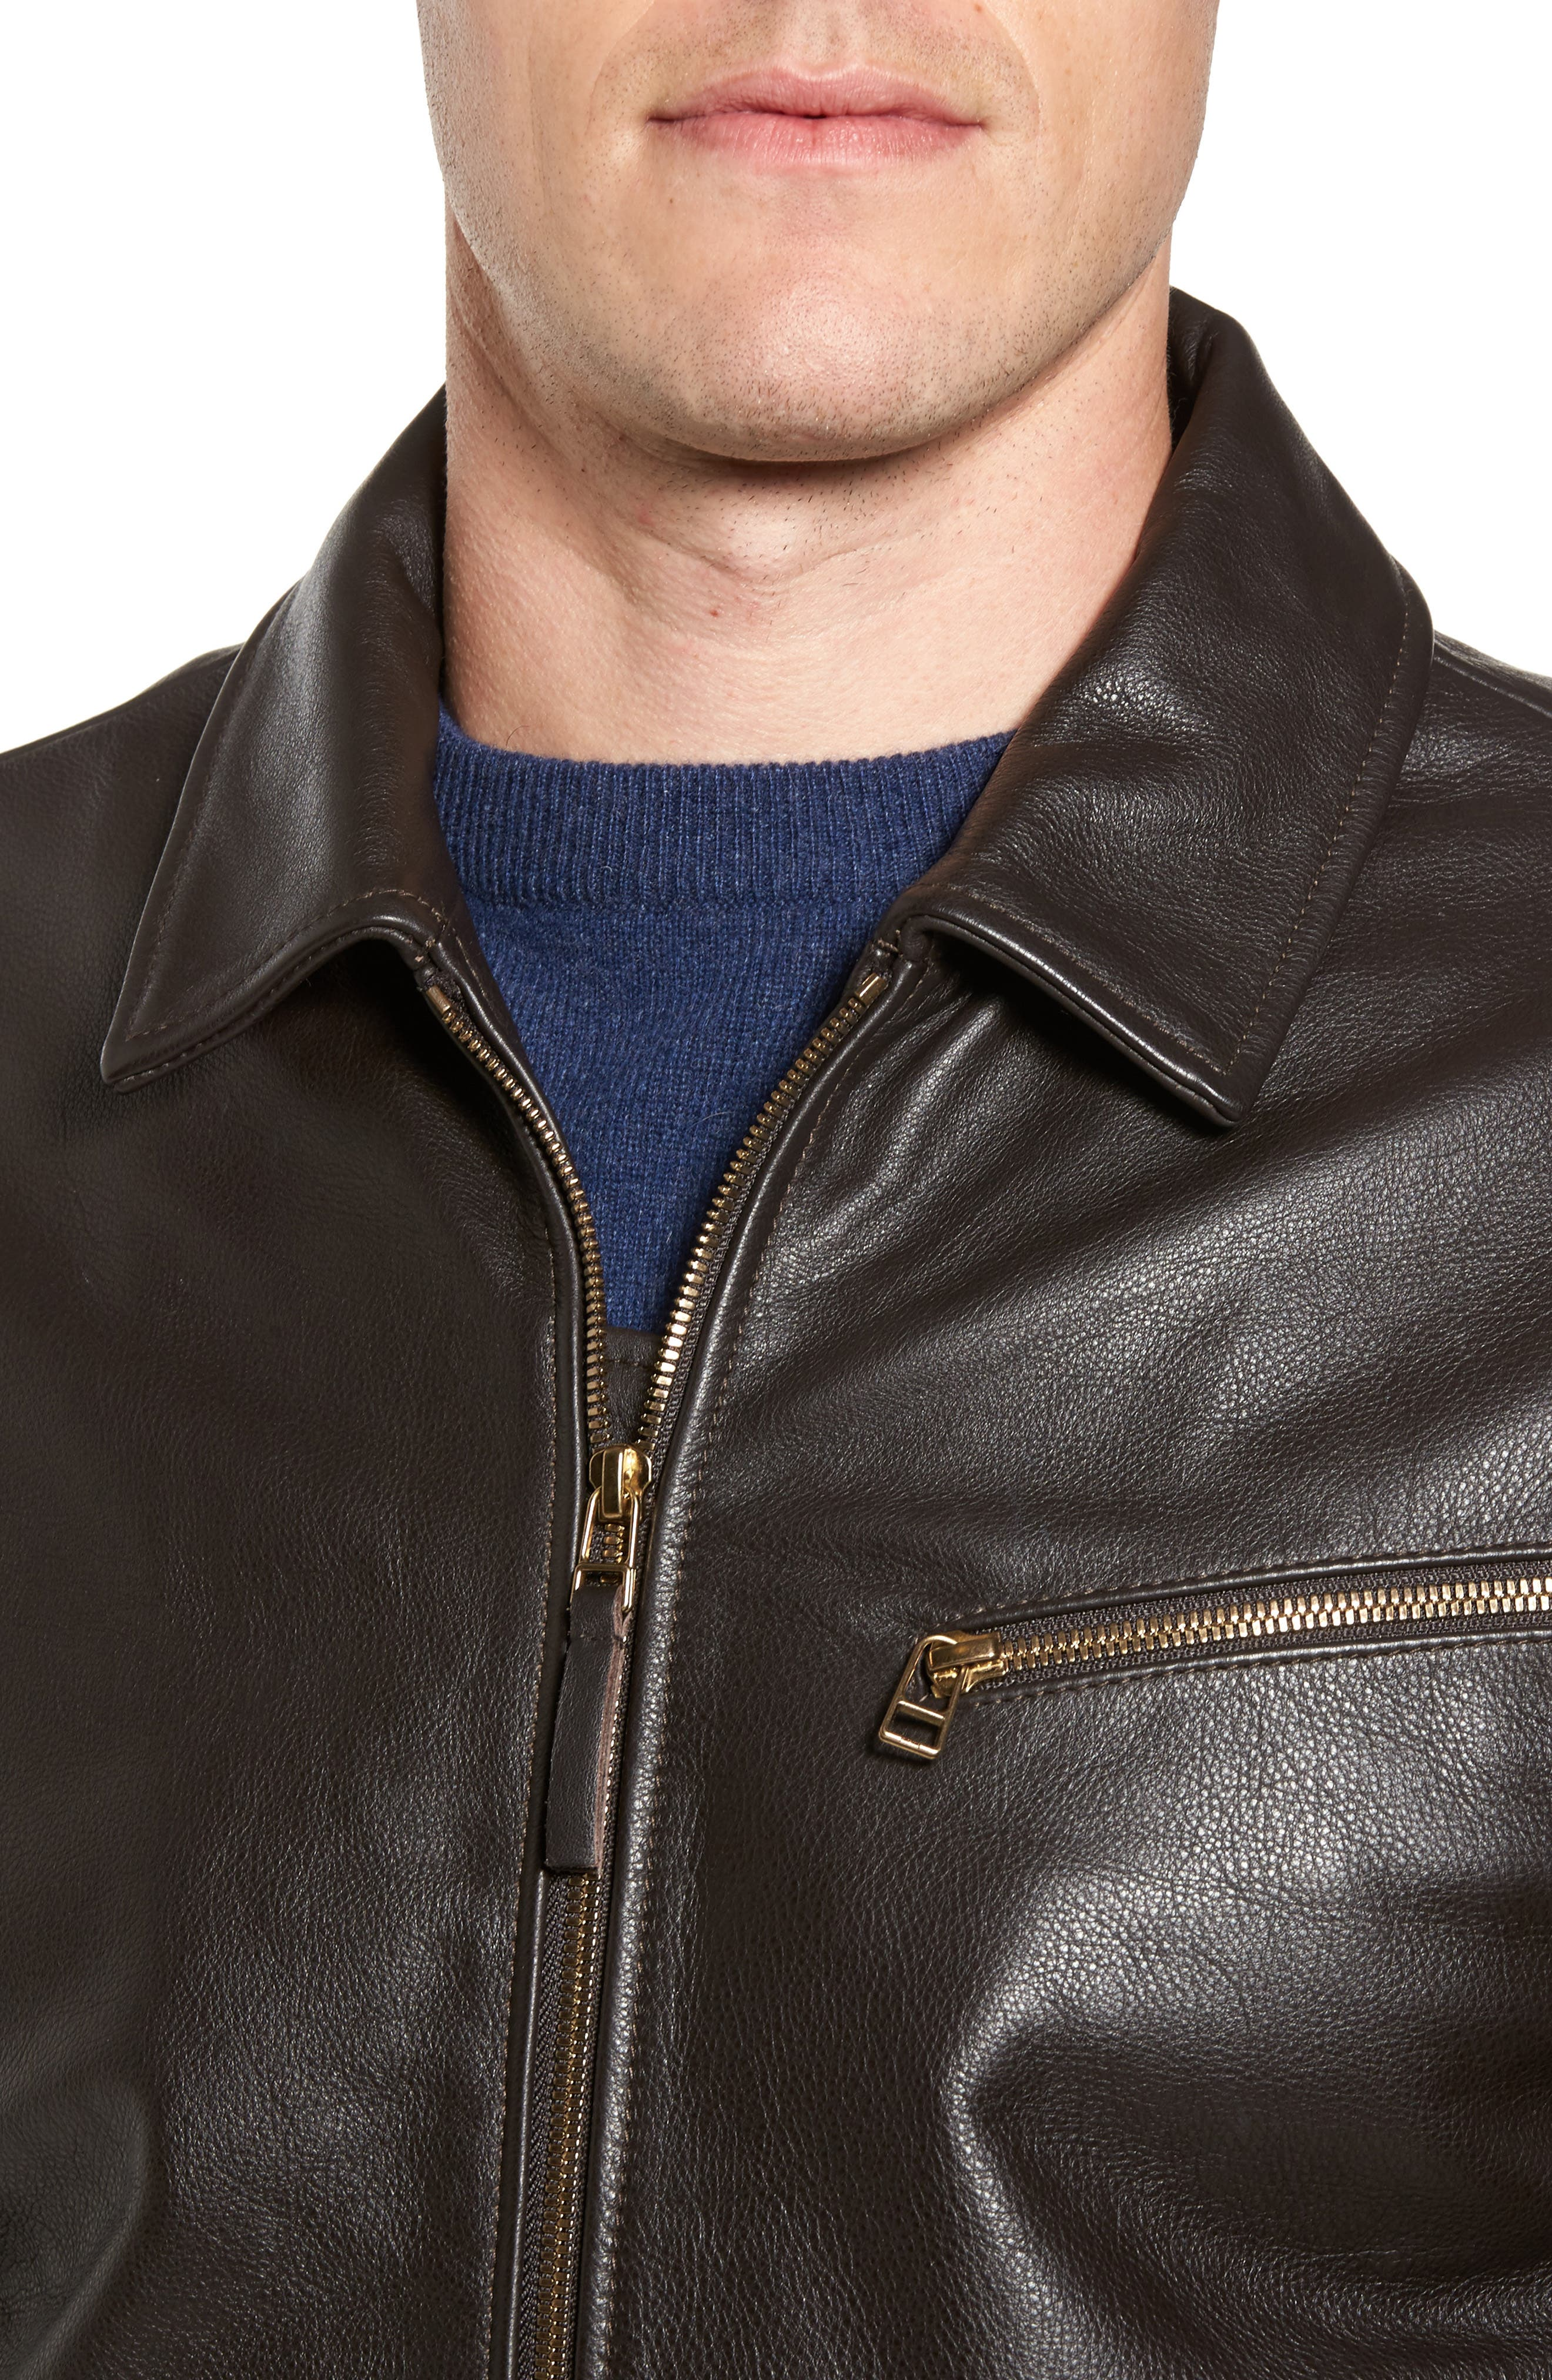 Year Round Leather Jacket,                             Alternate thumbnail 4, color,